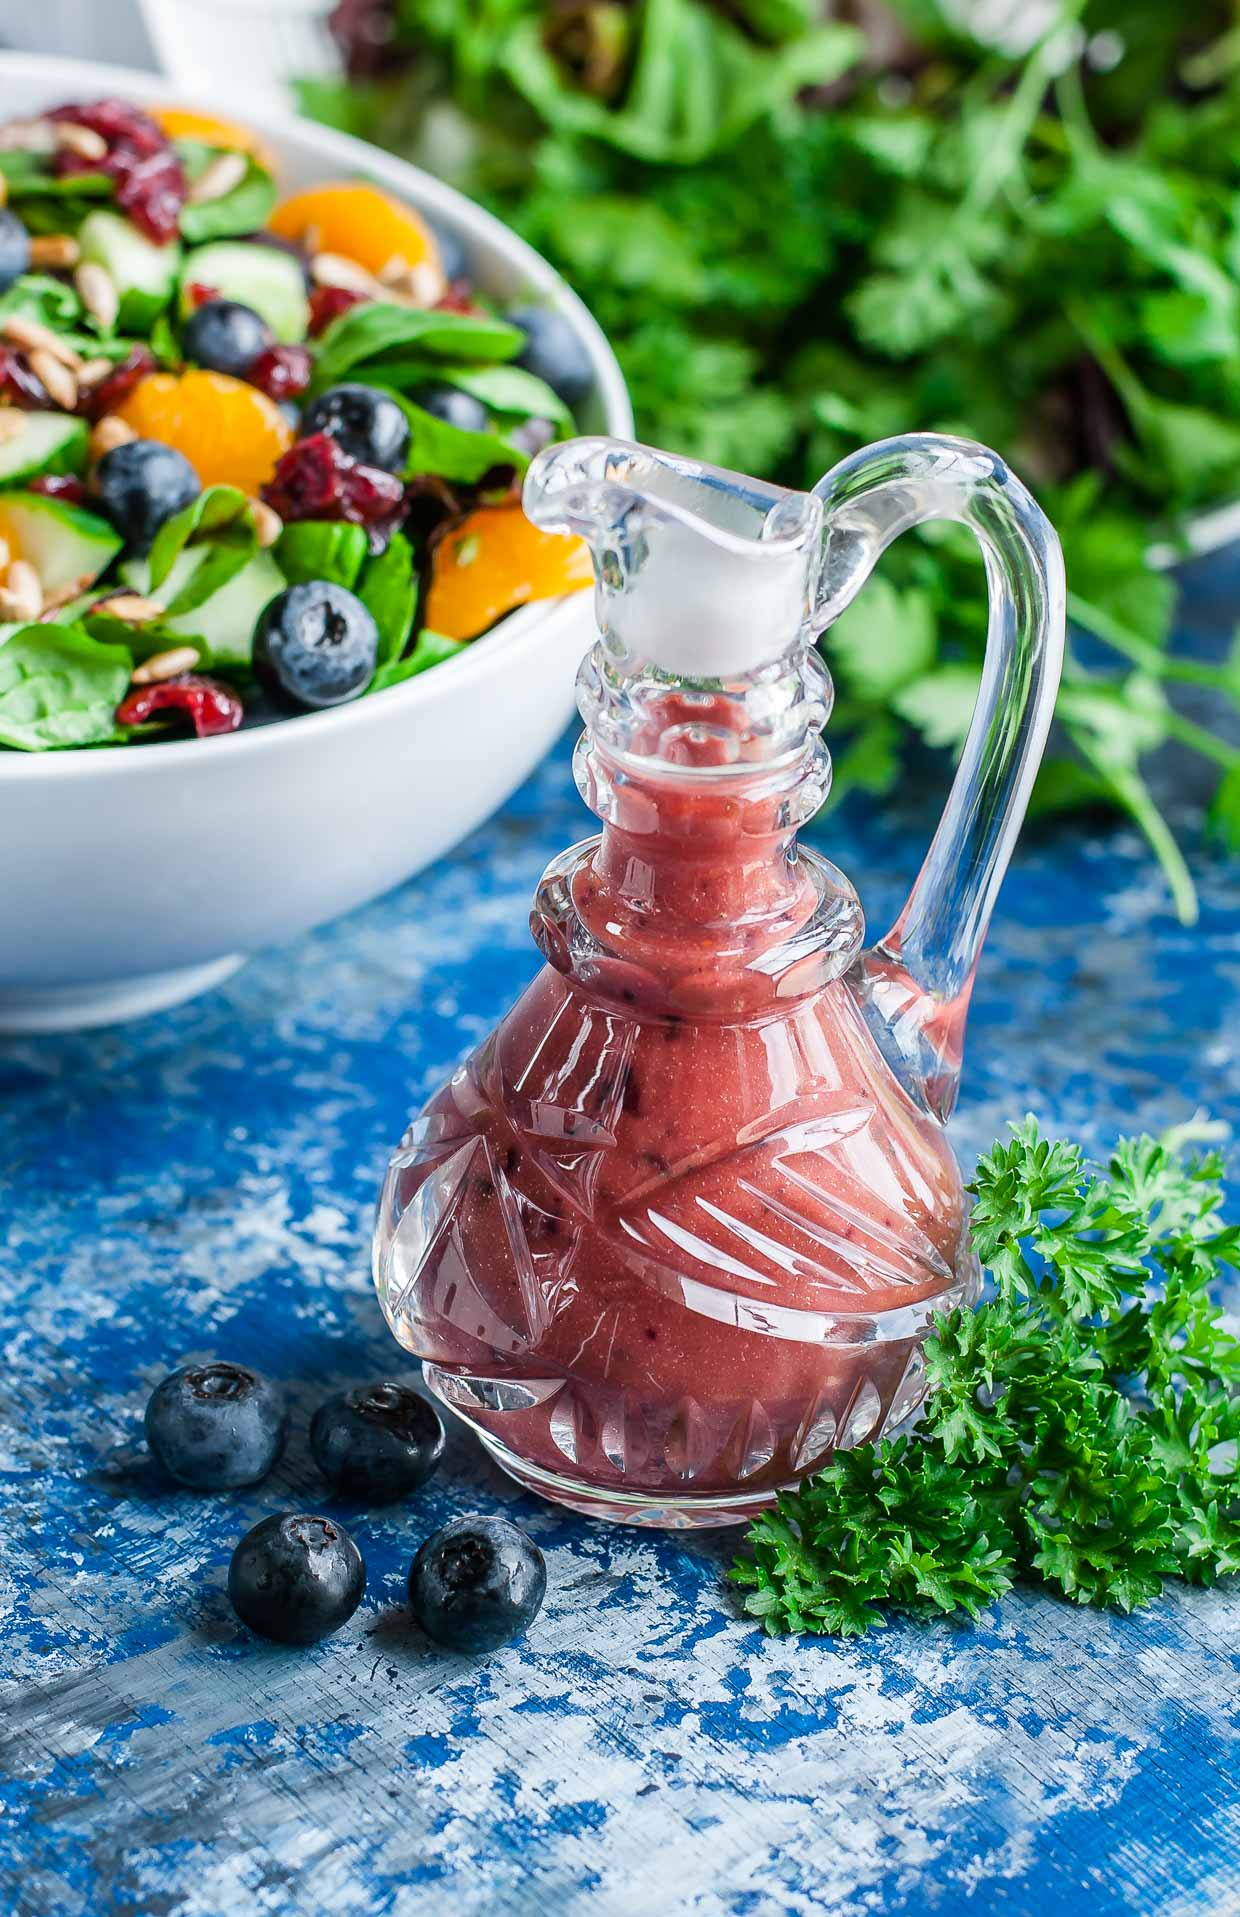 Cranberry Blueberry Spring Mix Salad with Blueberry Balsamic Dressing